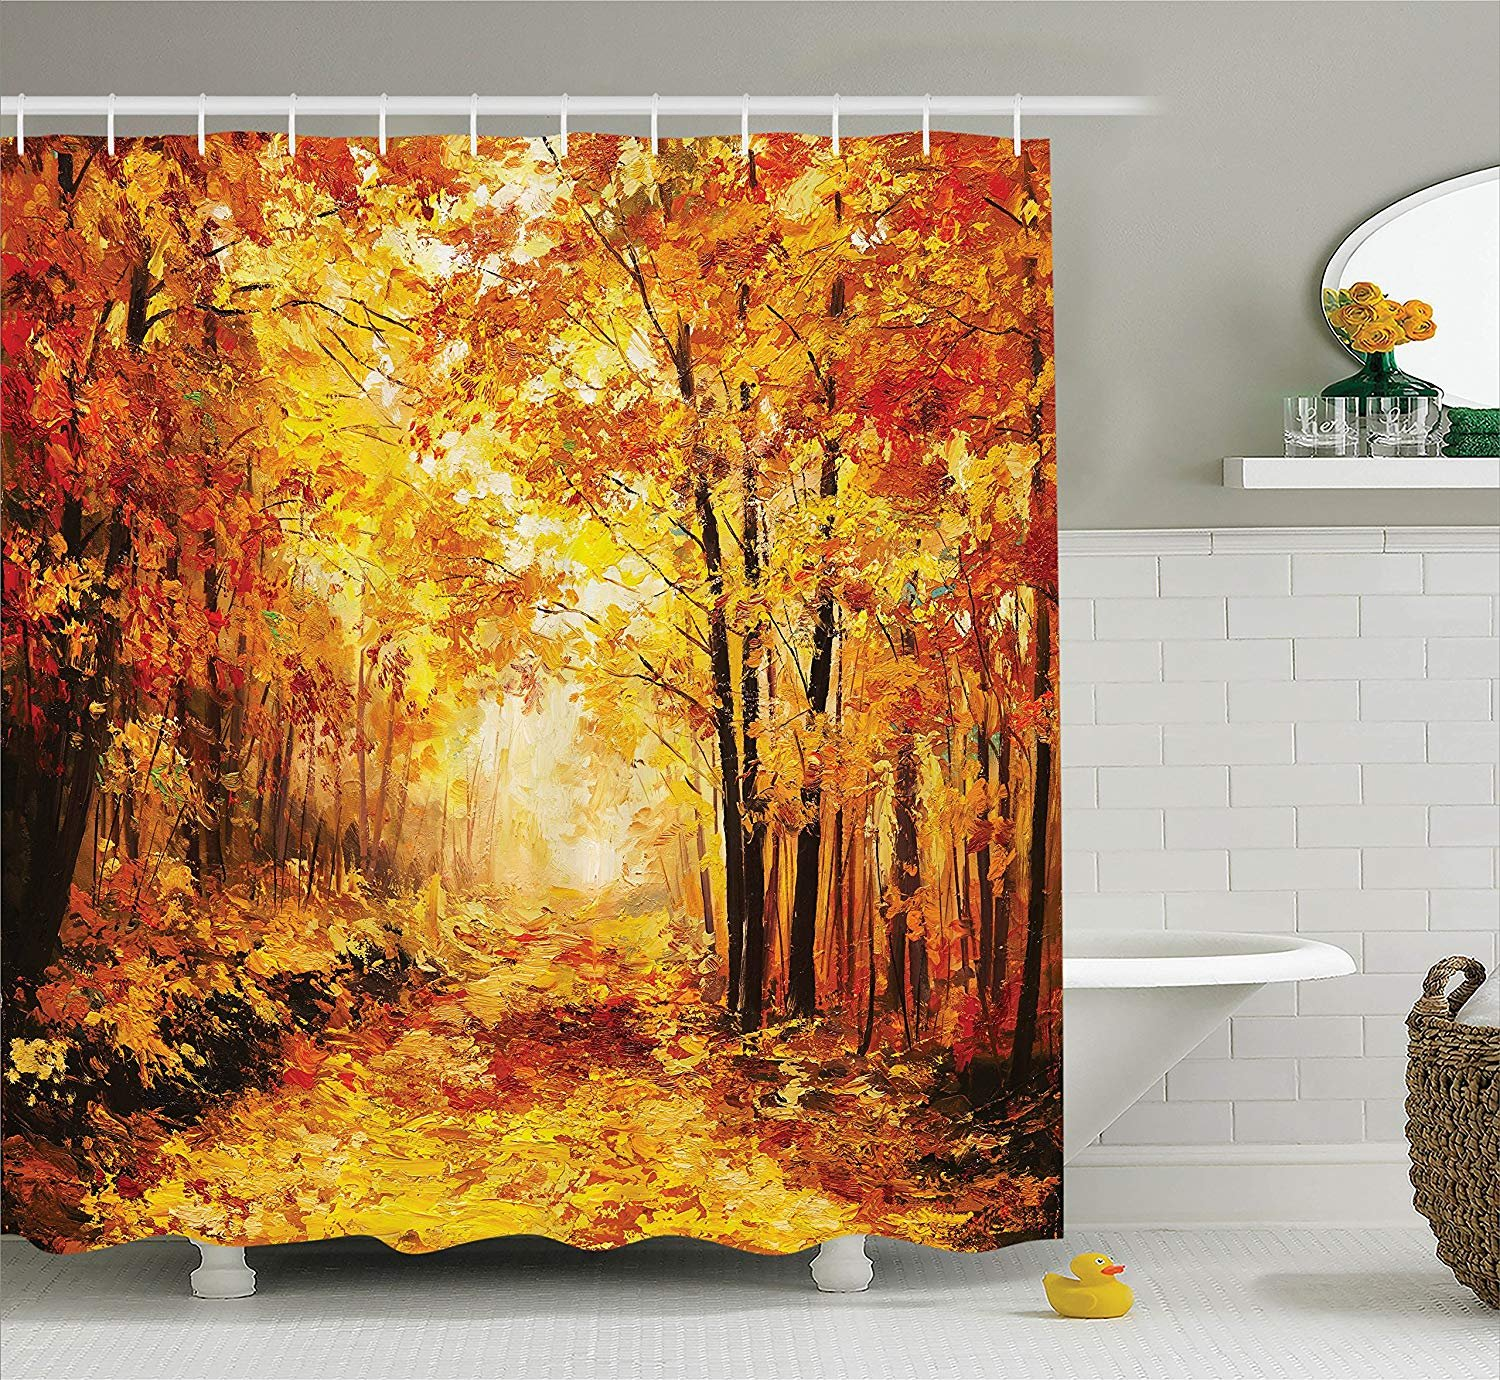 Printing Country Decor Shower Curtain Set, Pale Shaded Autumn in The Forest Pastoral Calm Simple Life Nature Paint Away Art Theme, 72 x 84 Inches Orange Brown